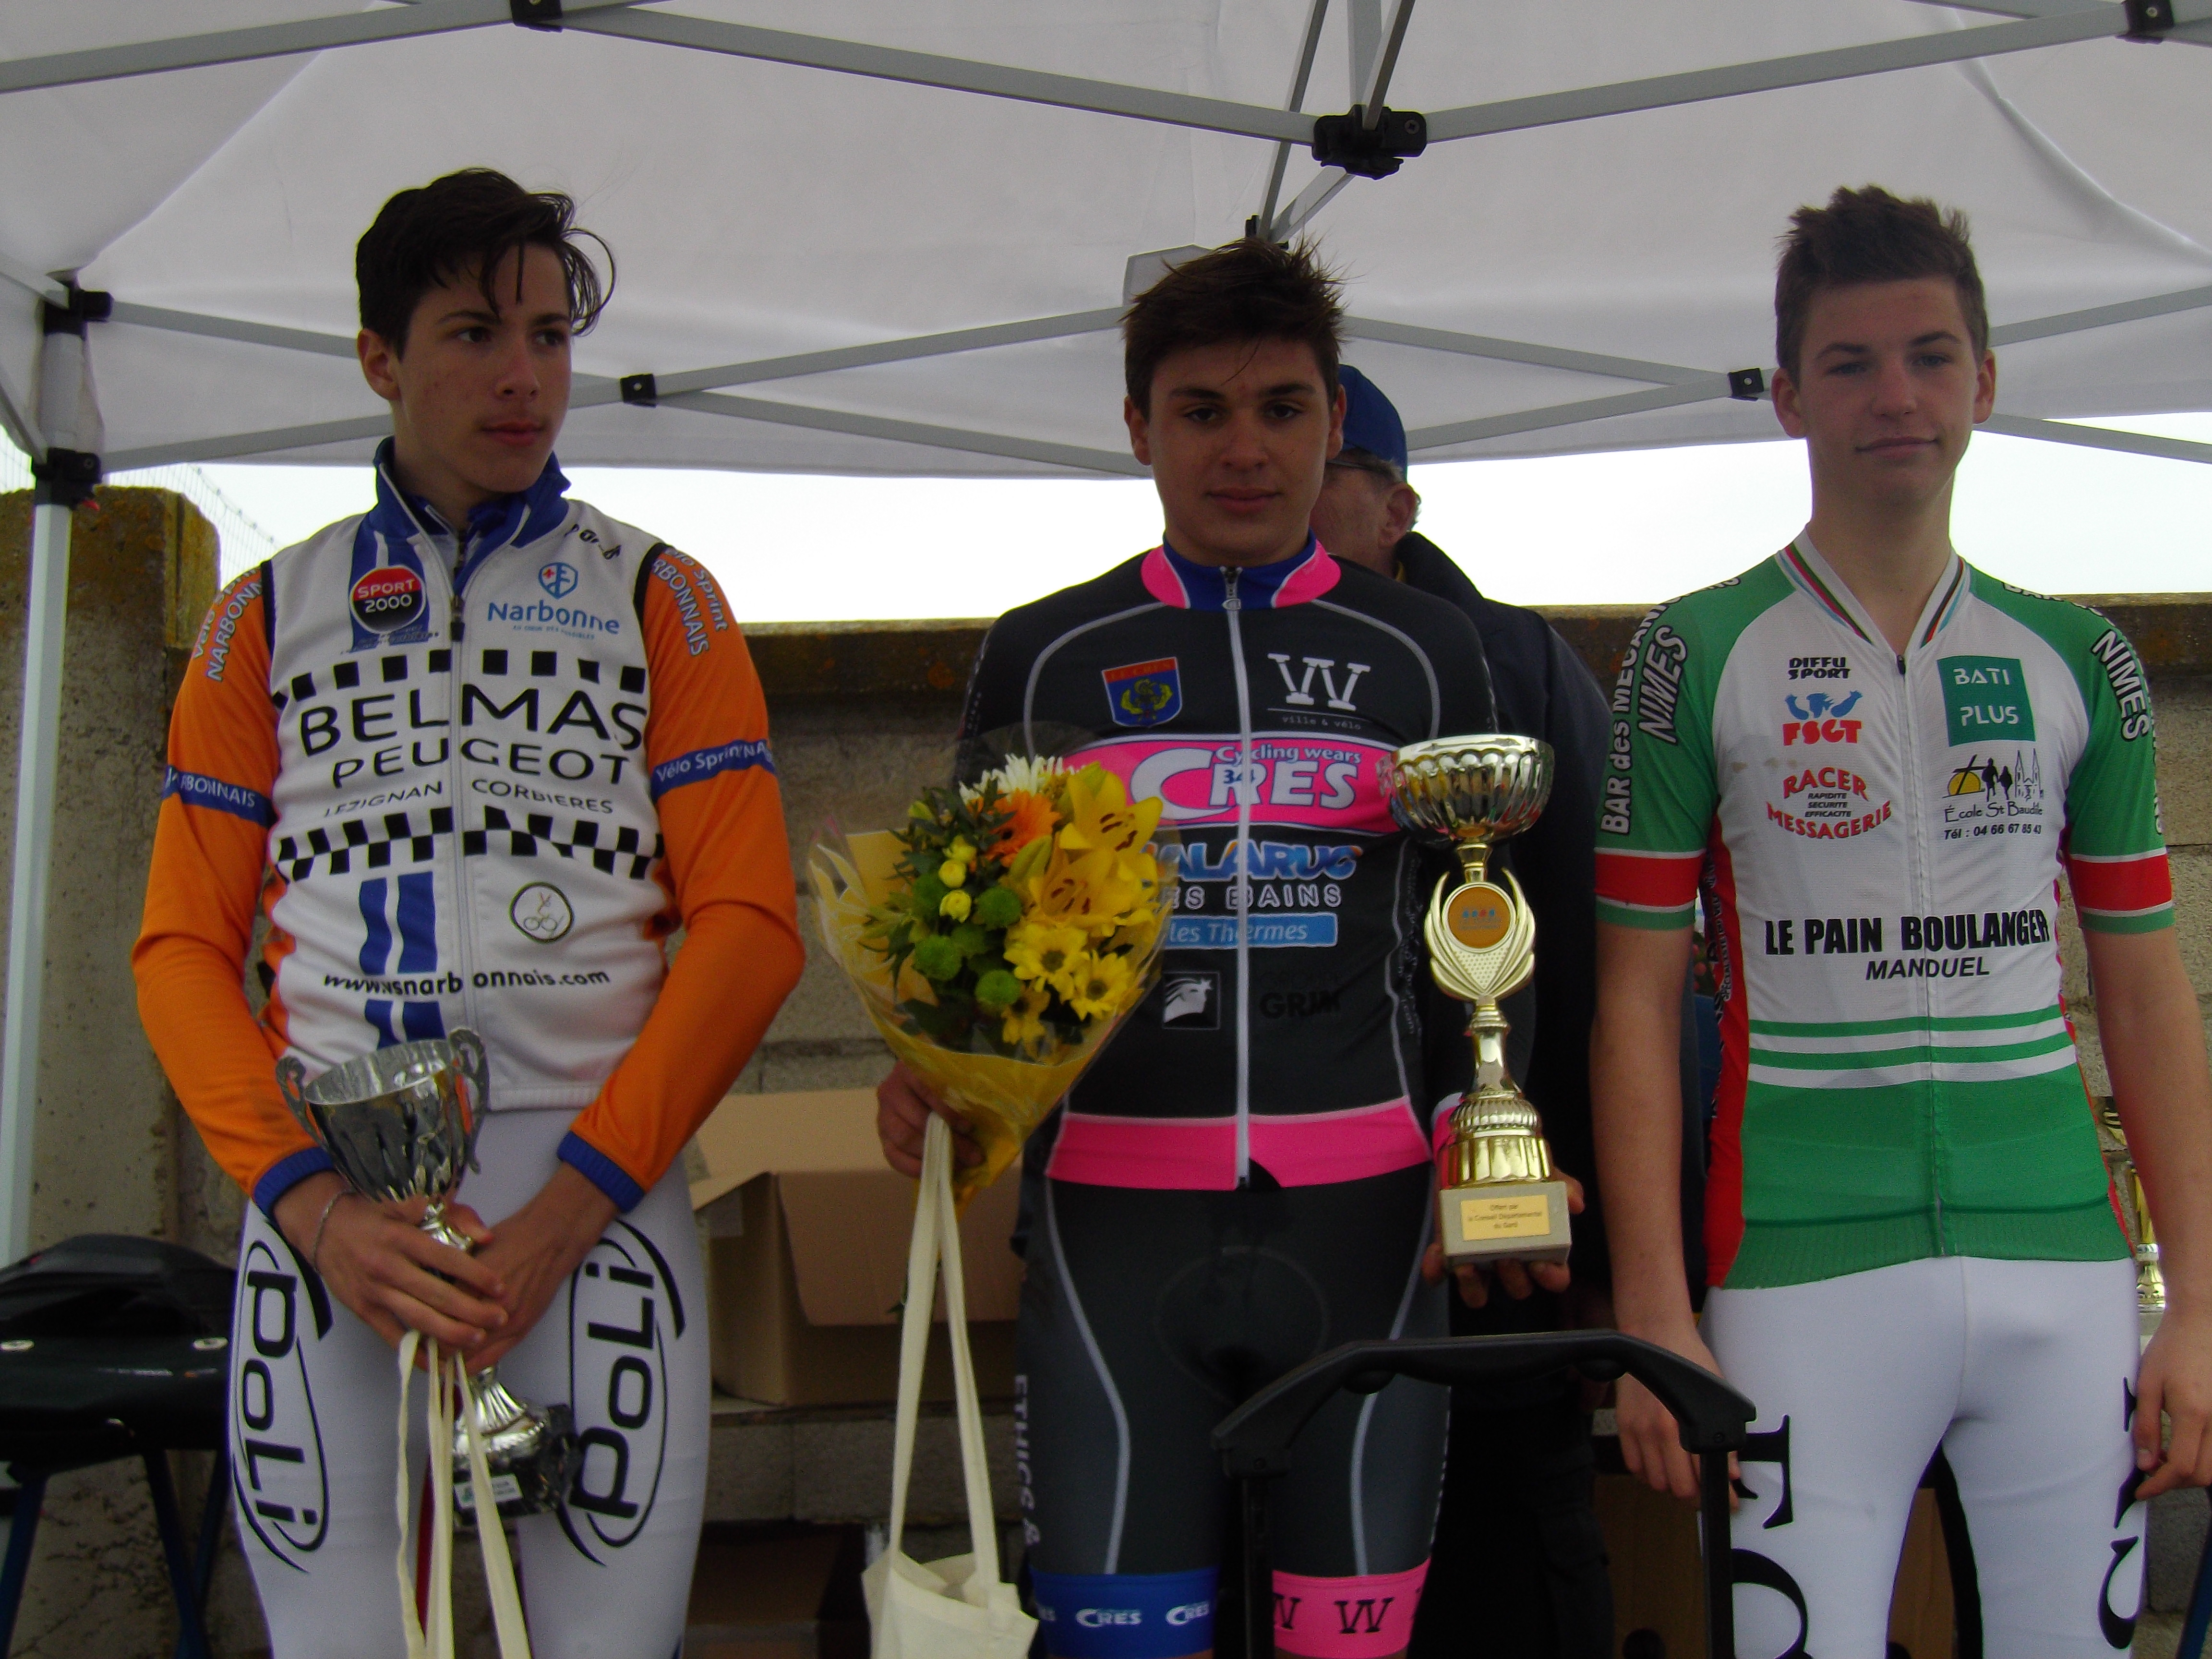 Tom Leboucher sur le podium